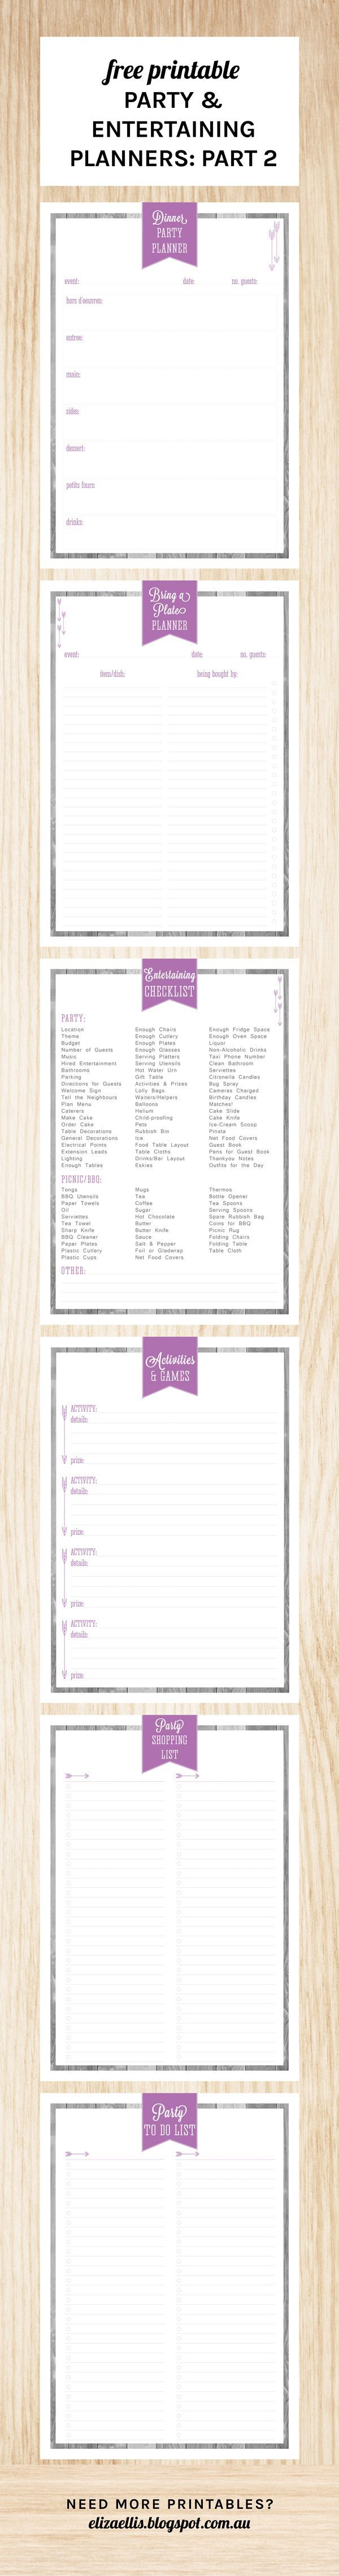 Free Printable Party & Entertaining Planners Part 2. This set includes: Dinner Party Planner, Bring a Plate Planner, Entertaining Checklist, Activities & Games Planner, Party Shopping List and Party To Do List. Mix and match your party planners to suit the event you're hosting - you can find Part One with six more party planners on the blog :)